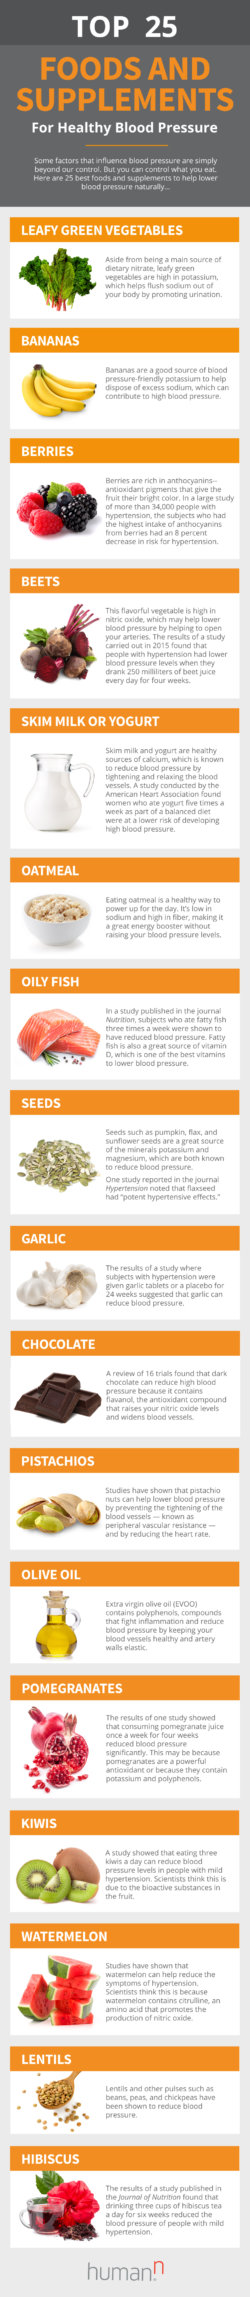 Top 25 Foods and Supplements For Healthy Blood Pressure